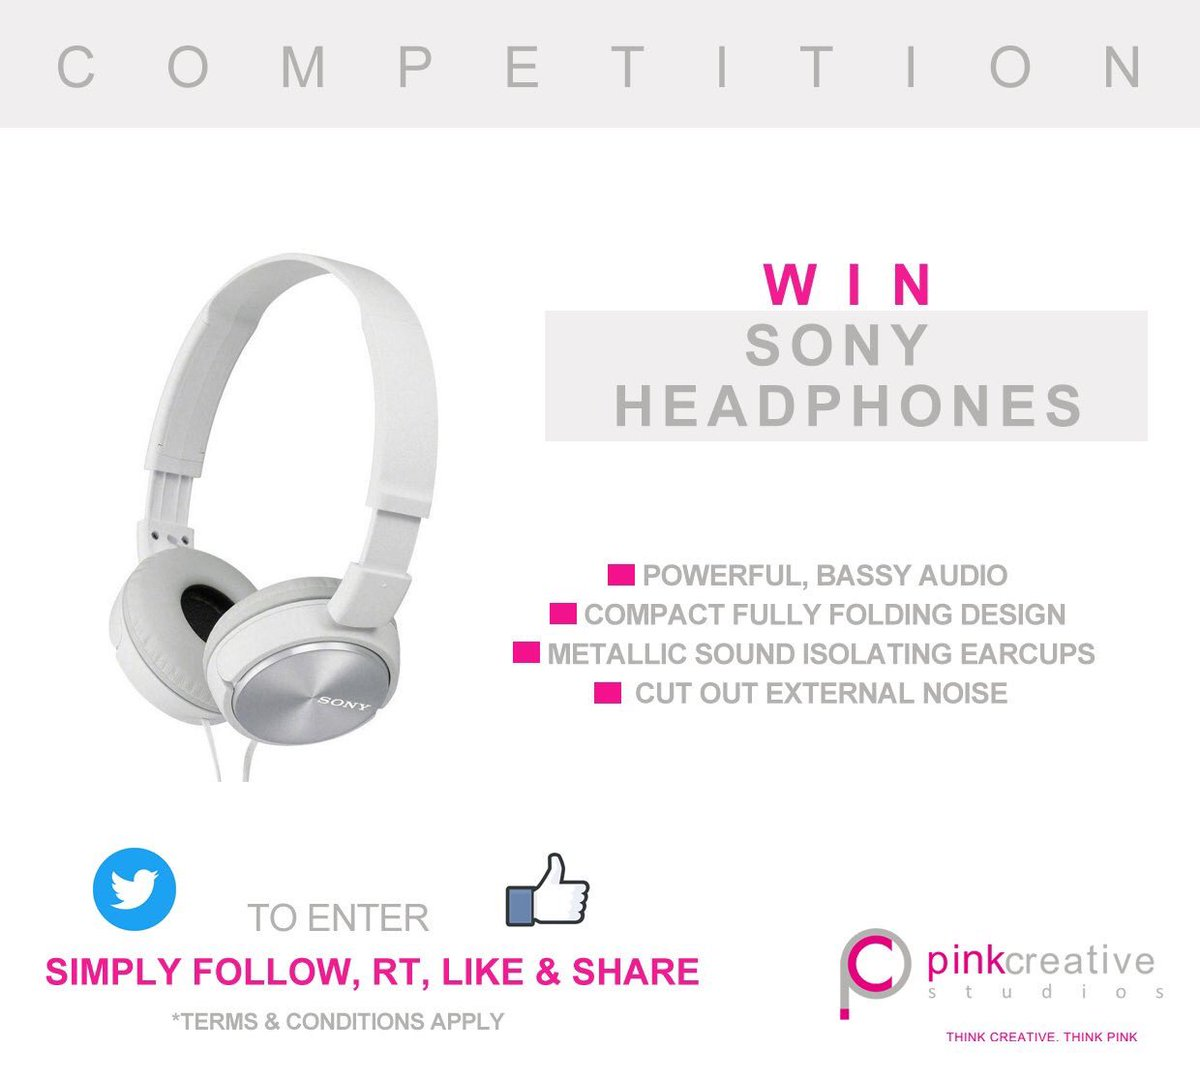 #Win #Sony Headphones. To enter Follow #RT, Like &amp; Share on #Facebook  http:// bit.ly/2sj0ZRe  &nbsp;    #Competition #giveaway #comp #Retweet #free<br>http://pic.twitter.com/hCKcxQ04ZQ